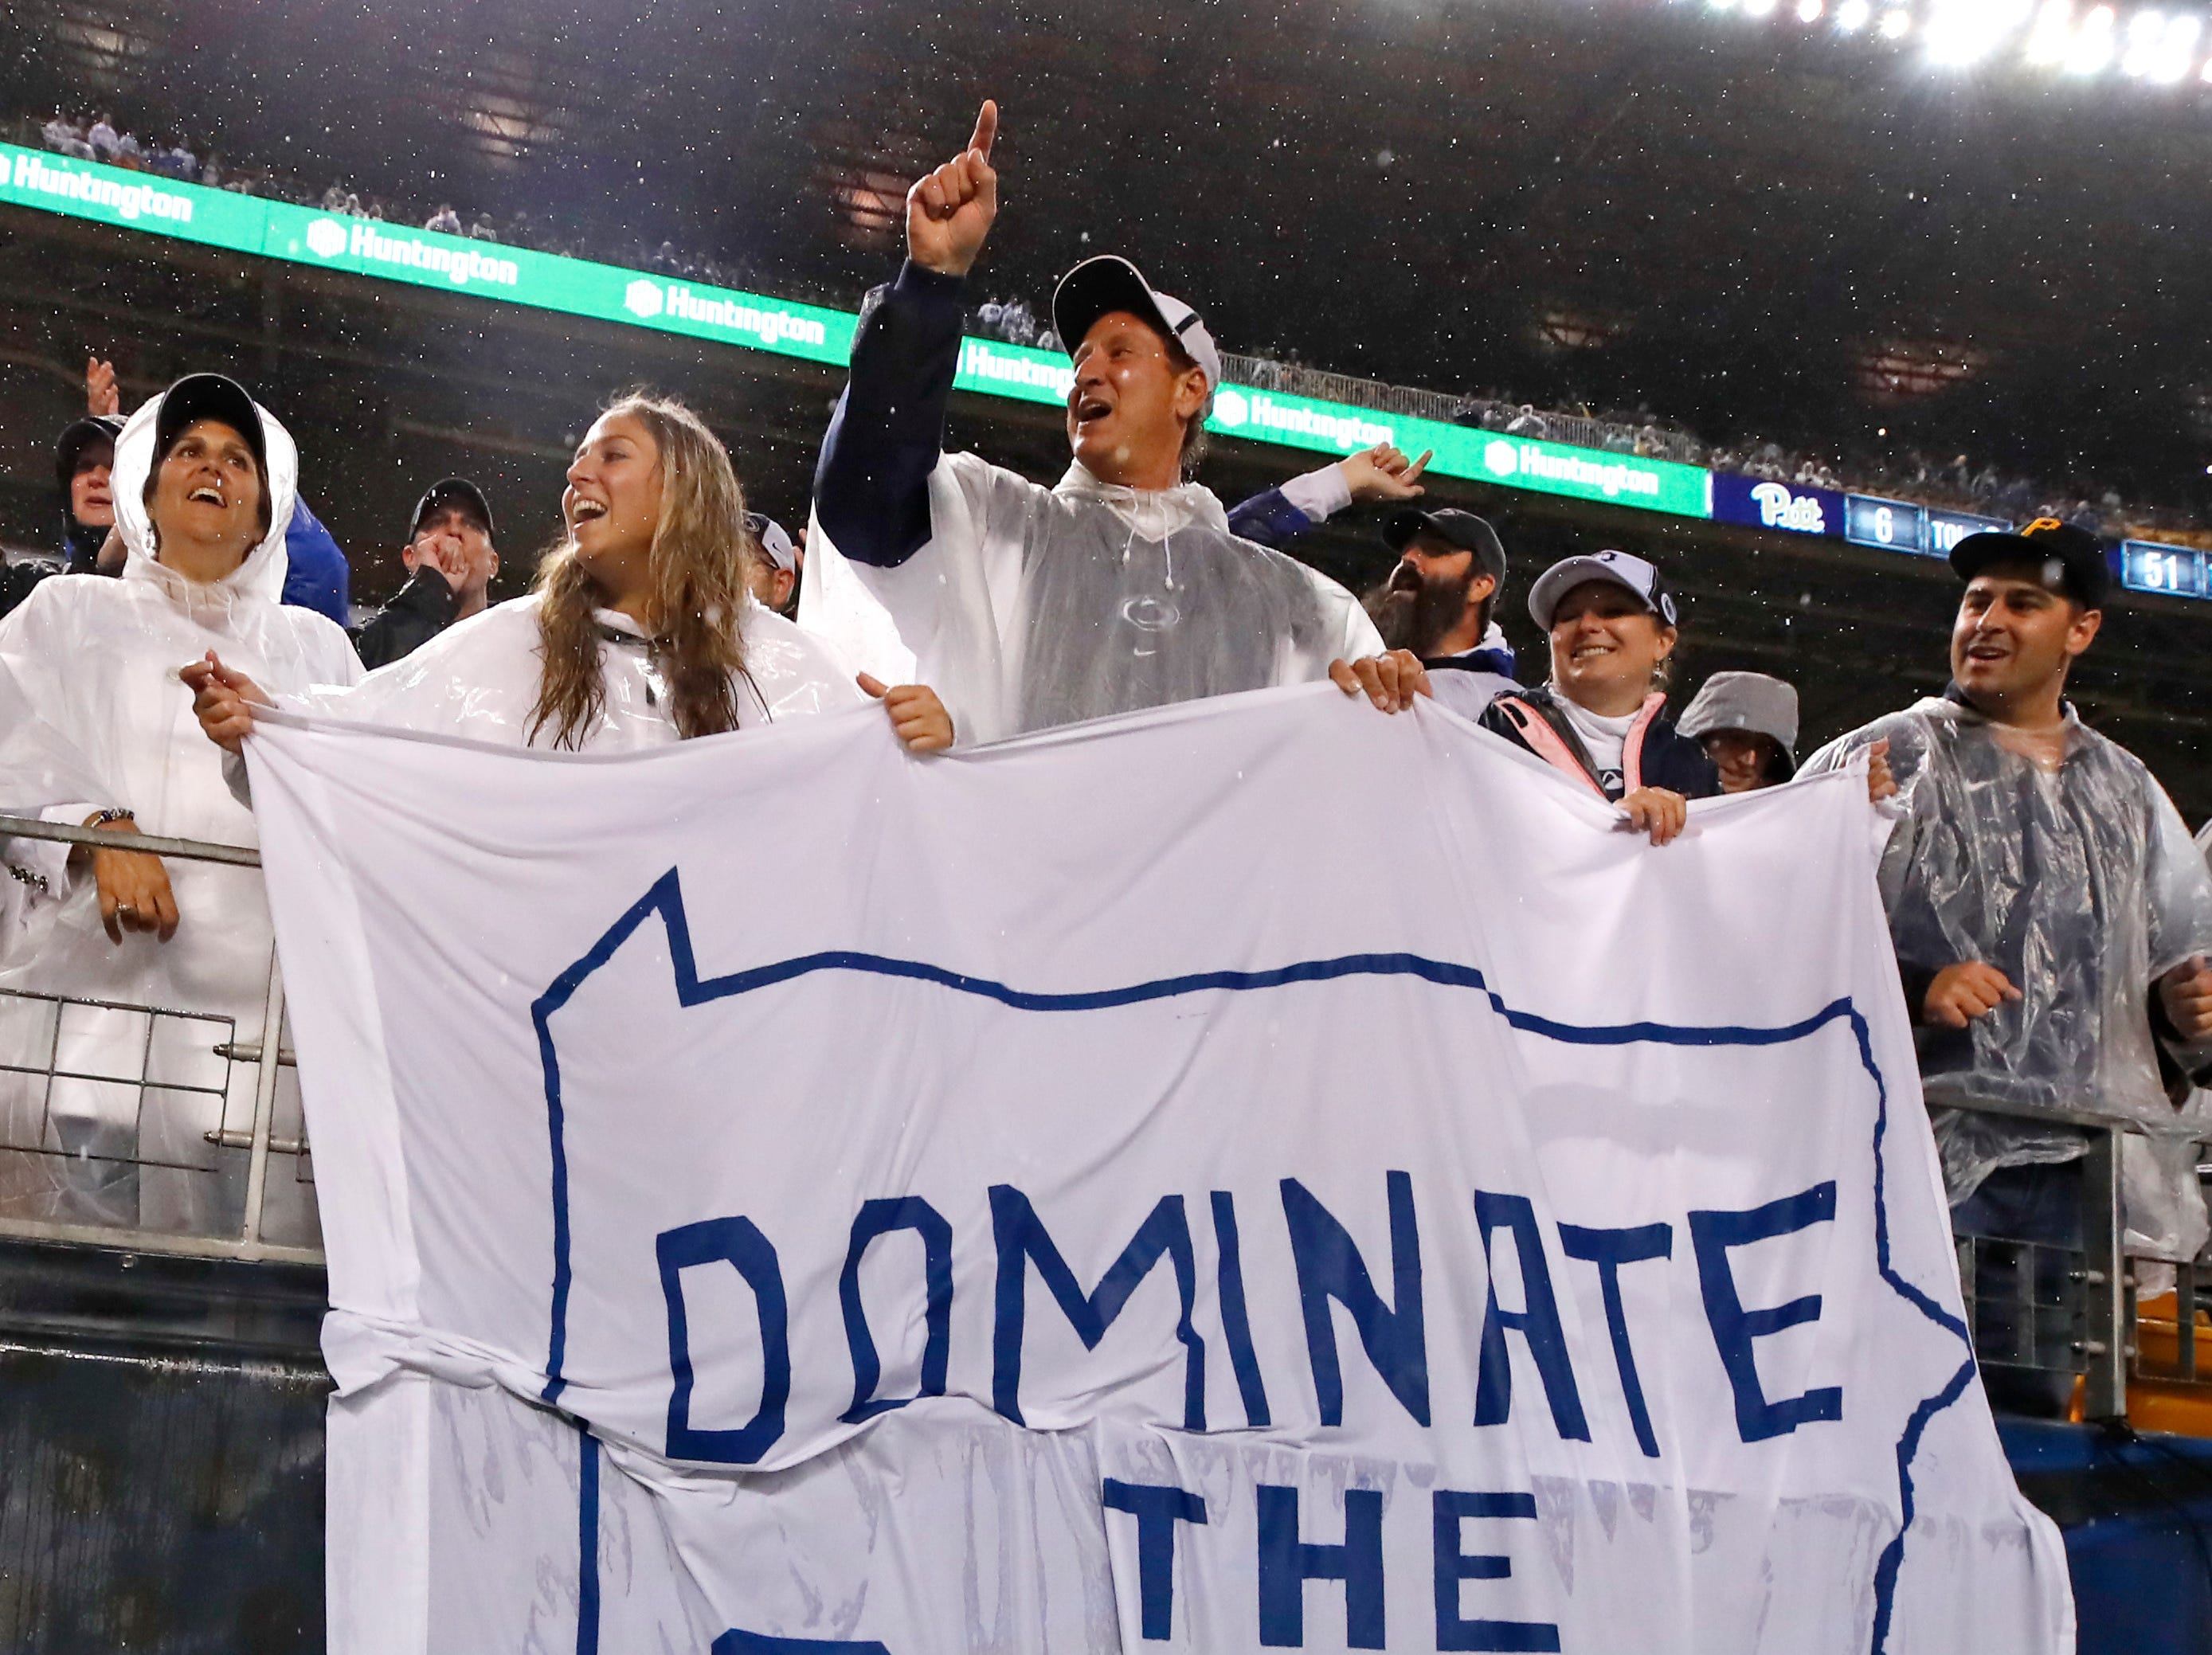 Penn State fans celebrate during the second half of an NCAA college football game between Pittsburgh and Penn State in Pittsburgh, Saturday, Sept. 8, 2018. Penn State won 51-6.